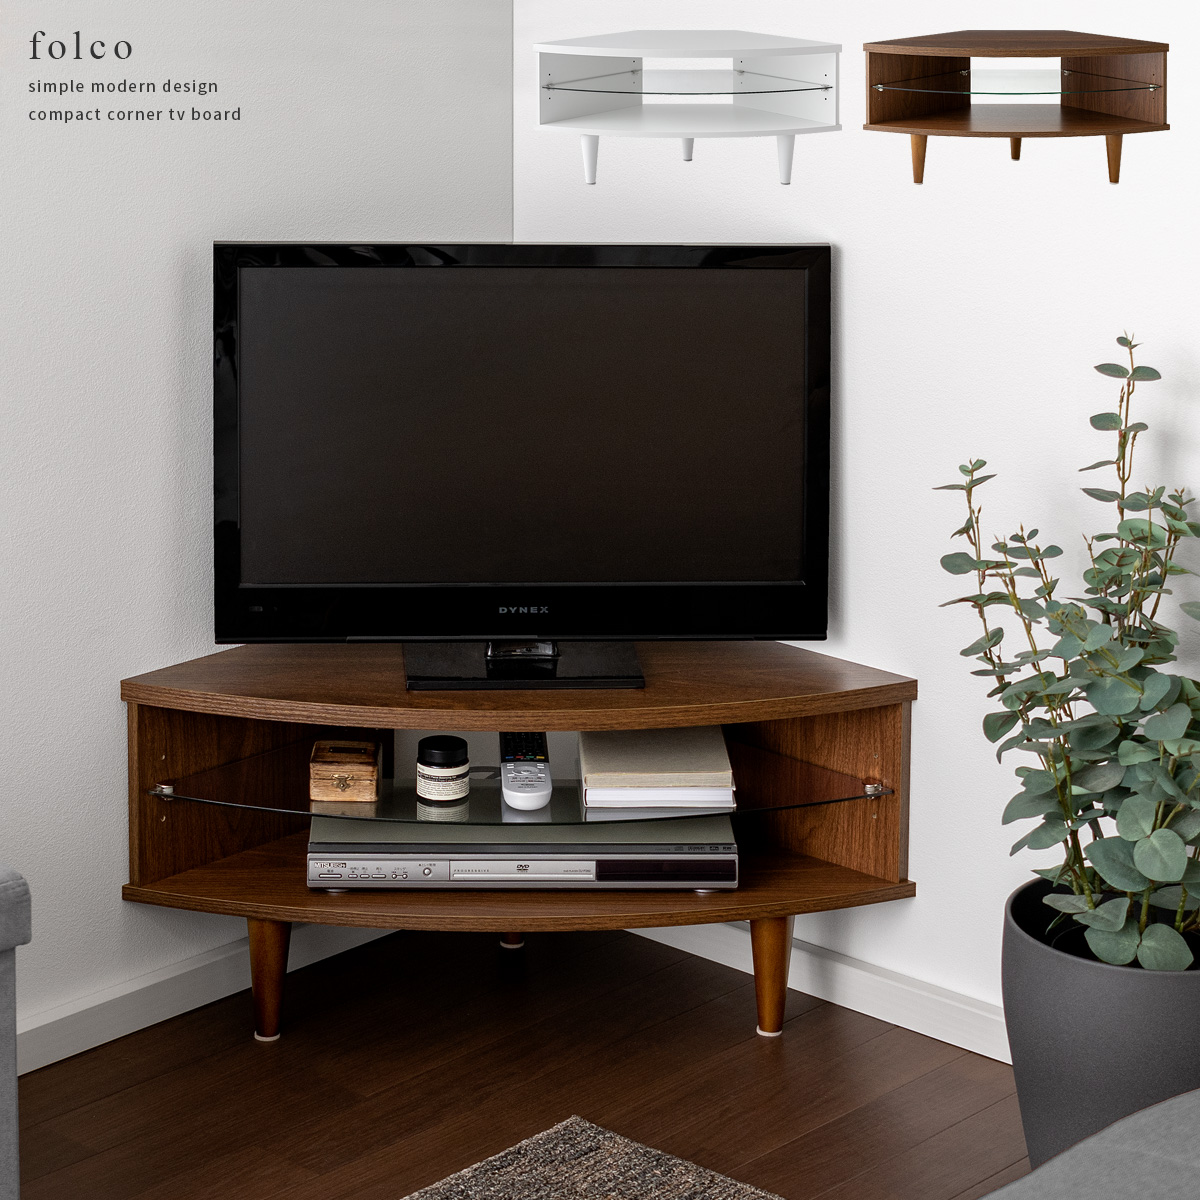 Merveilleux TV Units Corner Snack Make TV Stand Corner TV Units Tv Board Scandinavian  Simple AV Storage Storage Furniture 26 Inch Folco Stylish TV Stand [folk]  80 Cm ...